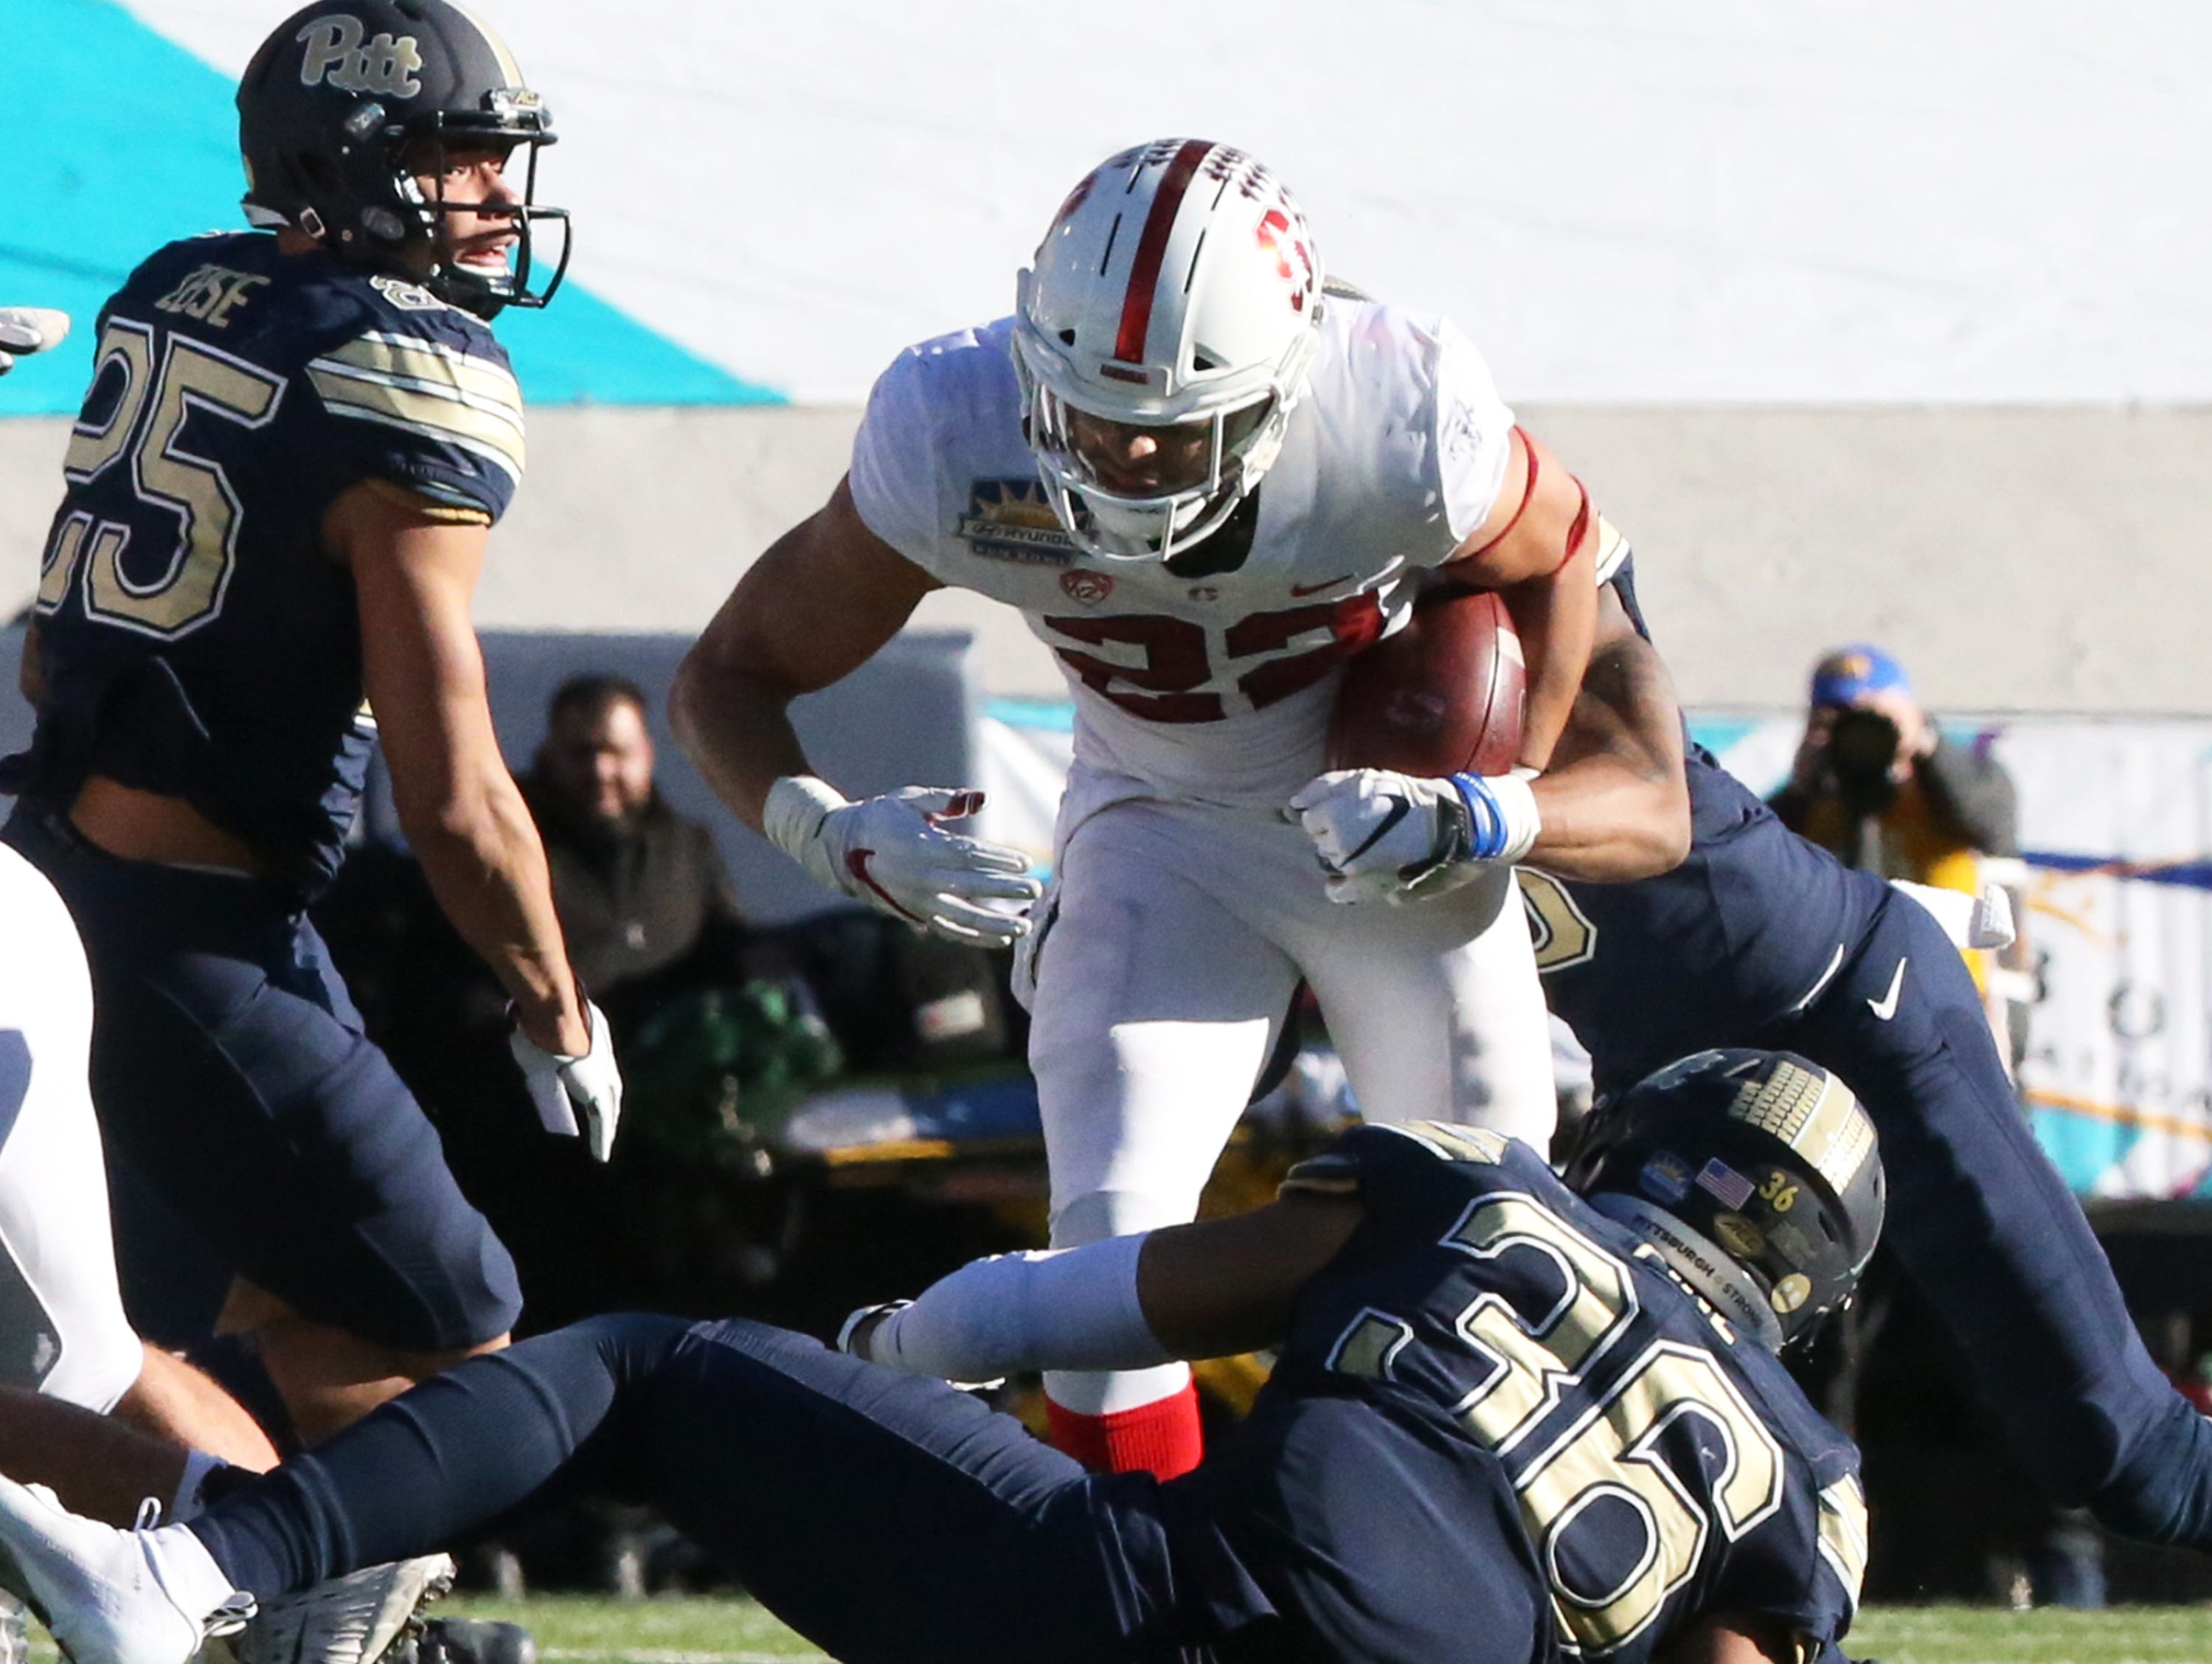 Stanford running back Cameron Scarlett, 22, gets the hand-off against Pitt Monday.